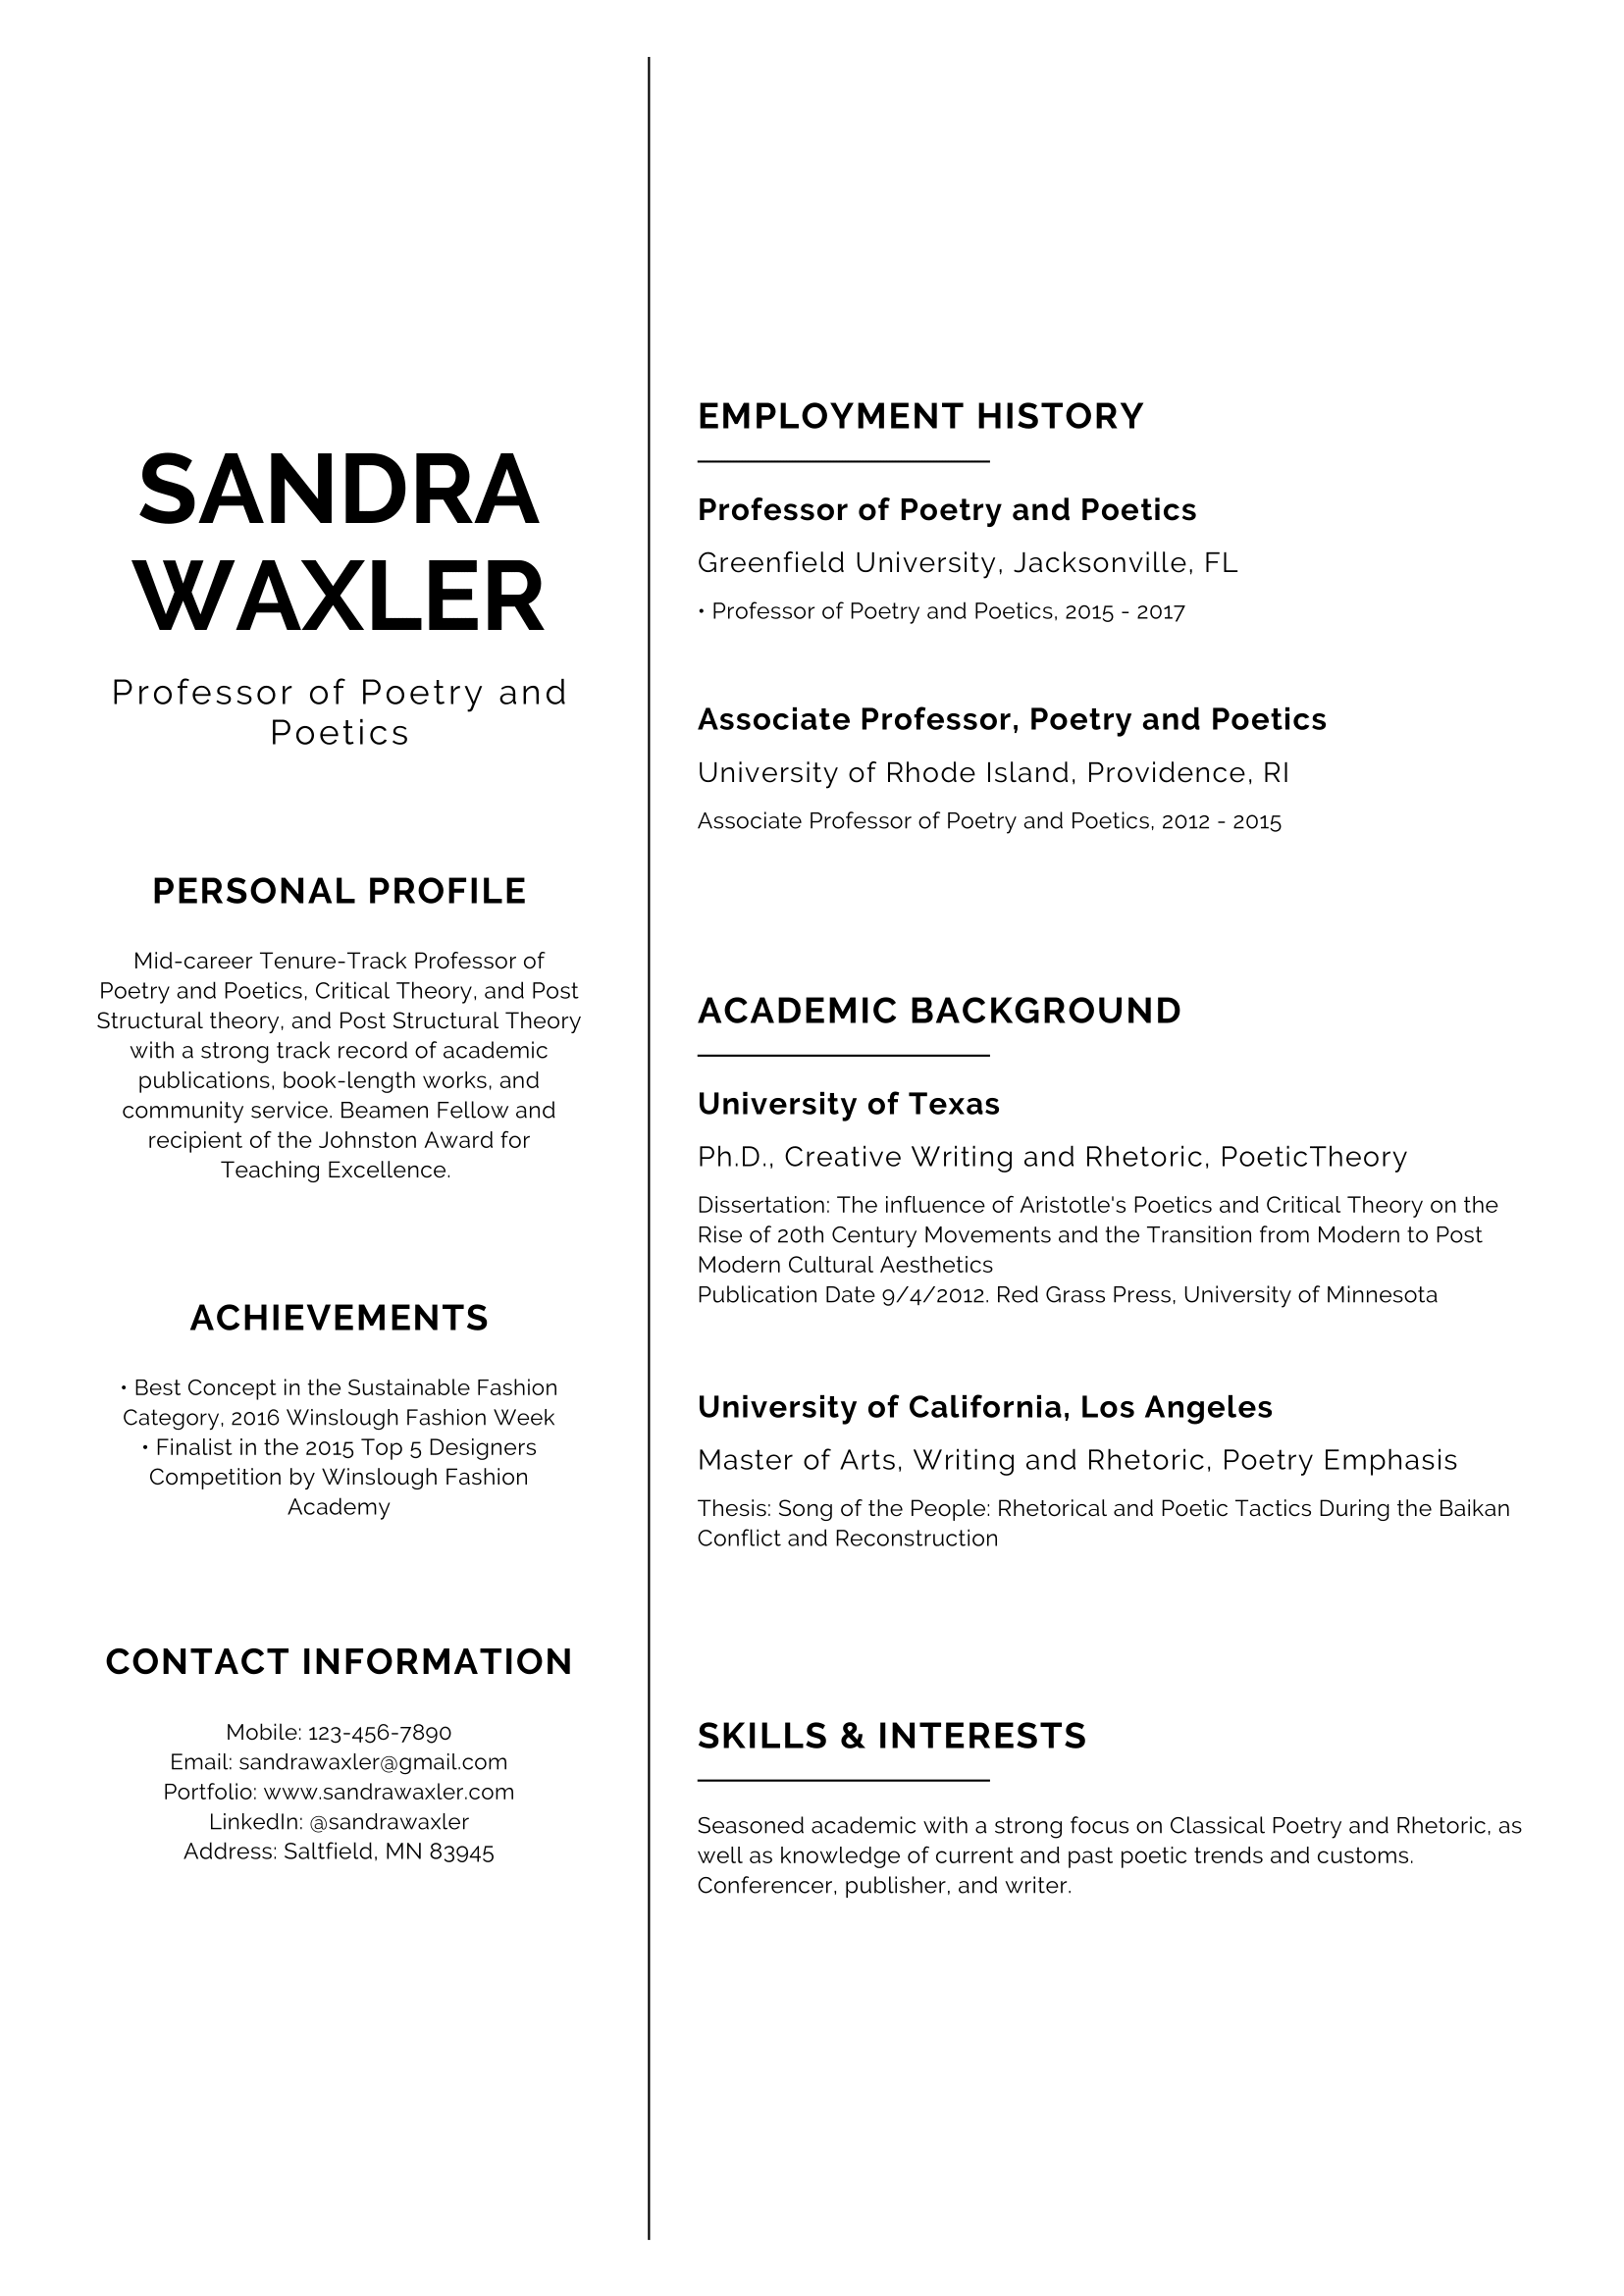 Cv Templates Resume Builder With Examples And Templates